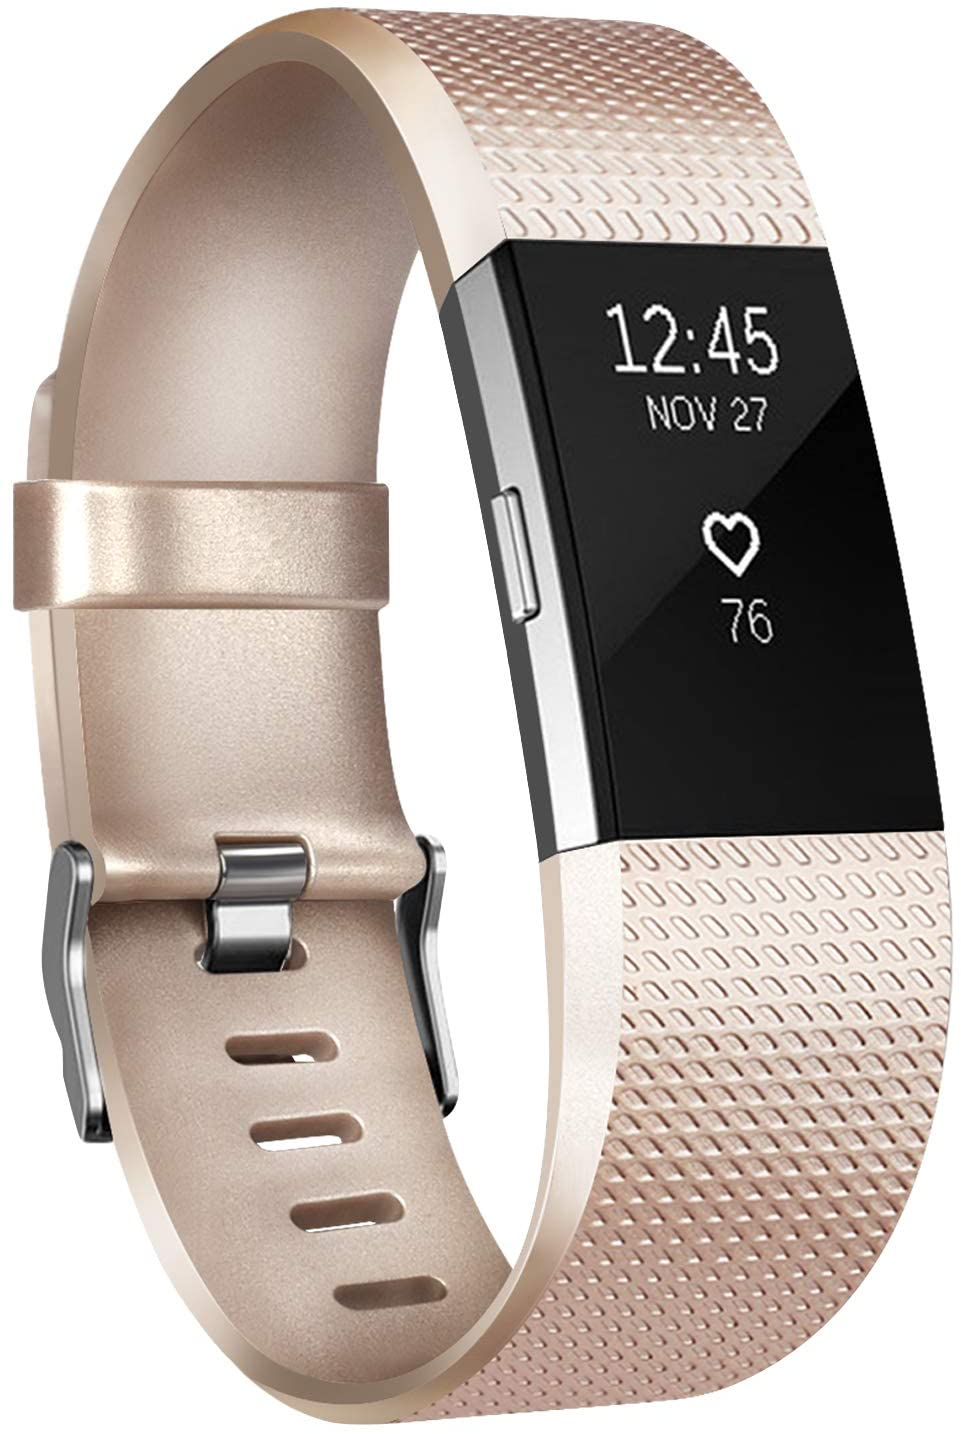 IEOVIEE Silicone Band Compatible with Fitbit Charge 2 Bands, Classic & Special Edition Soft Replacement Bands for Women Men Small Large (Small.Champagne)